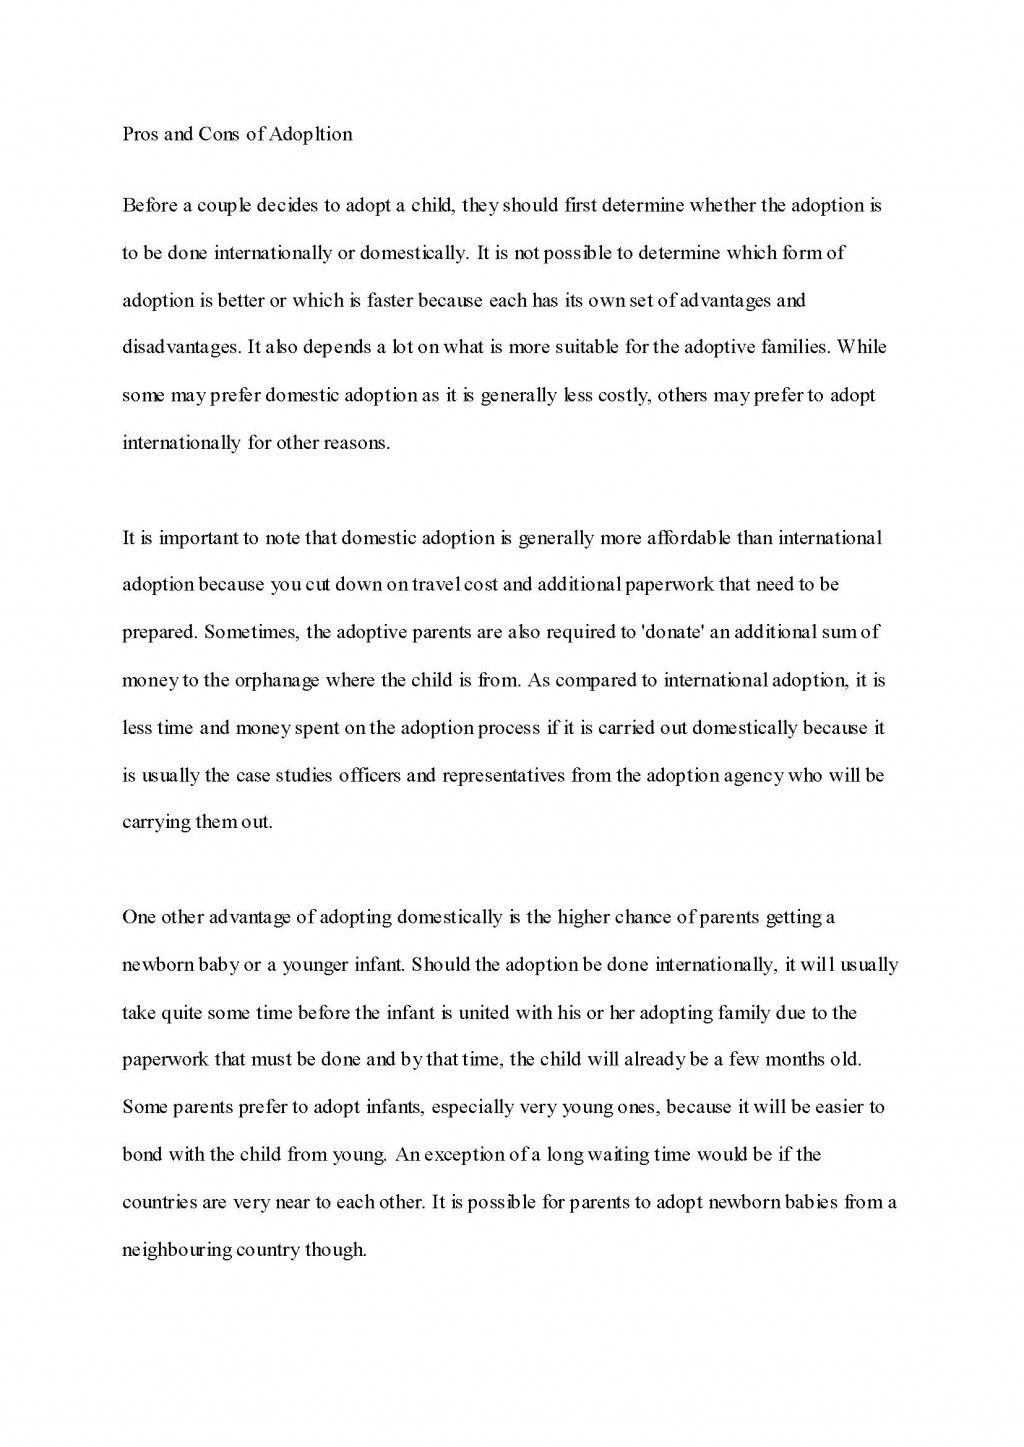 012 Adoption Essay Sample Example What Is Impressive A Literary About Theme Analysis Large